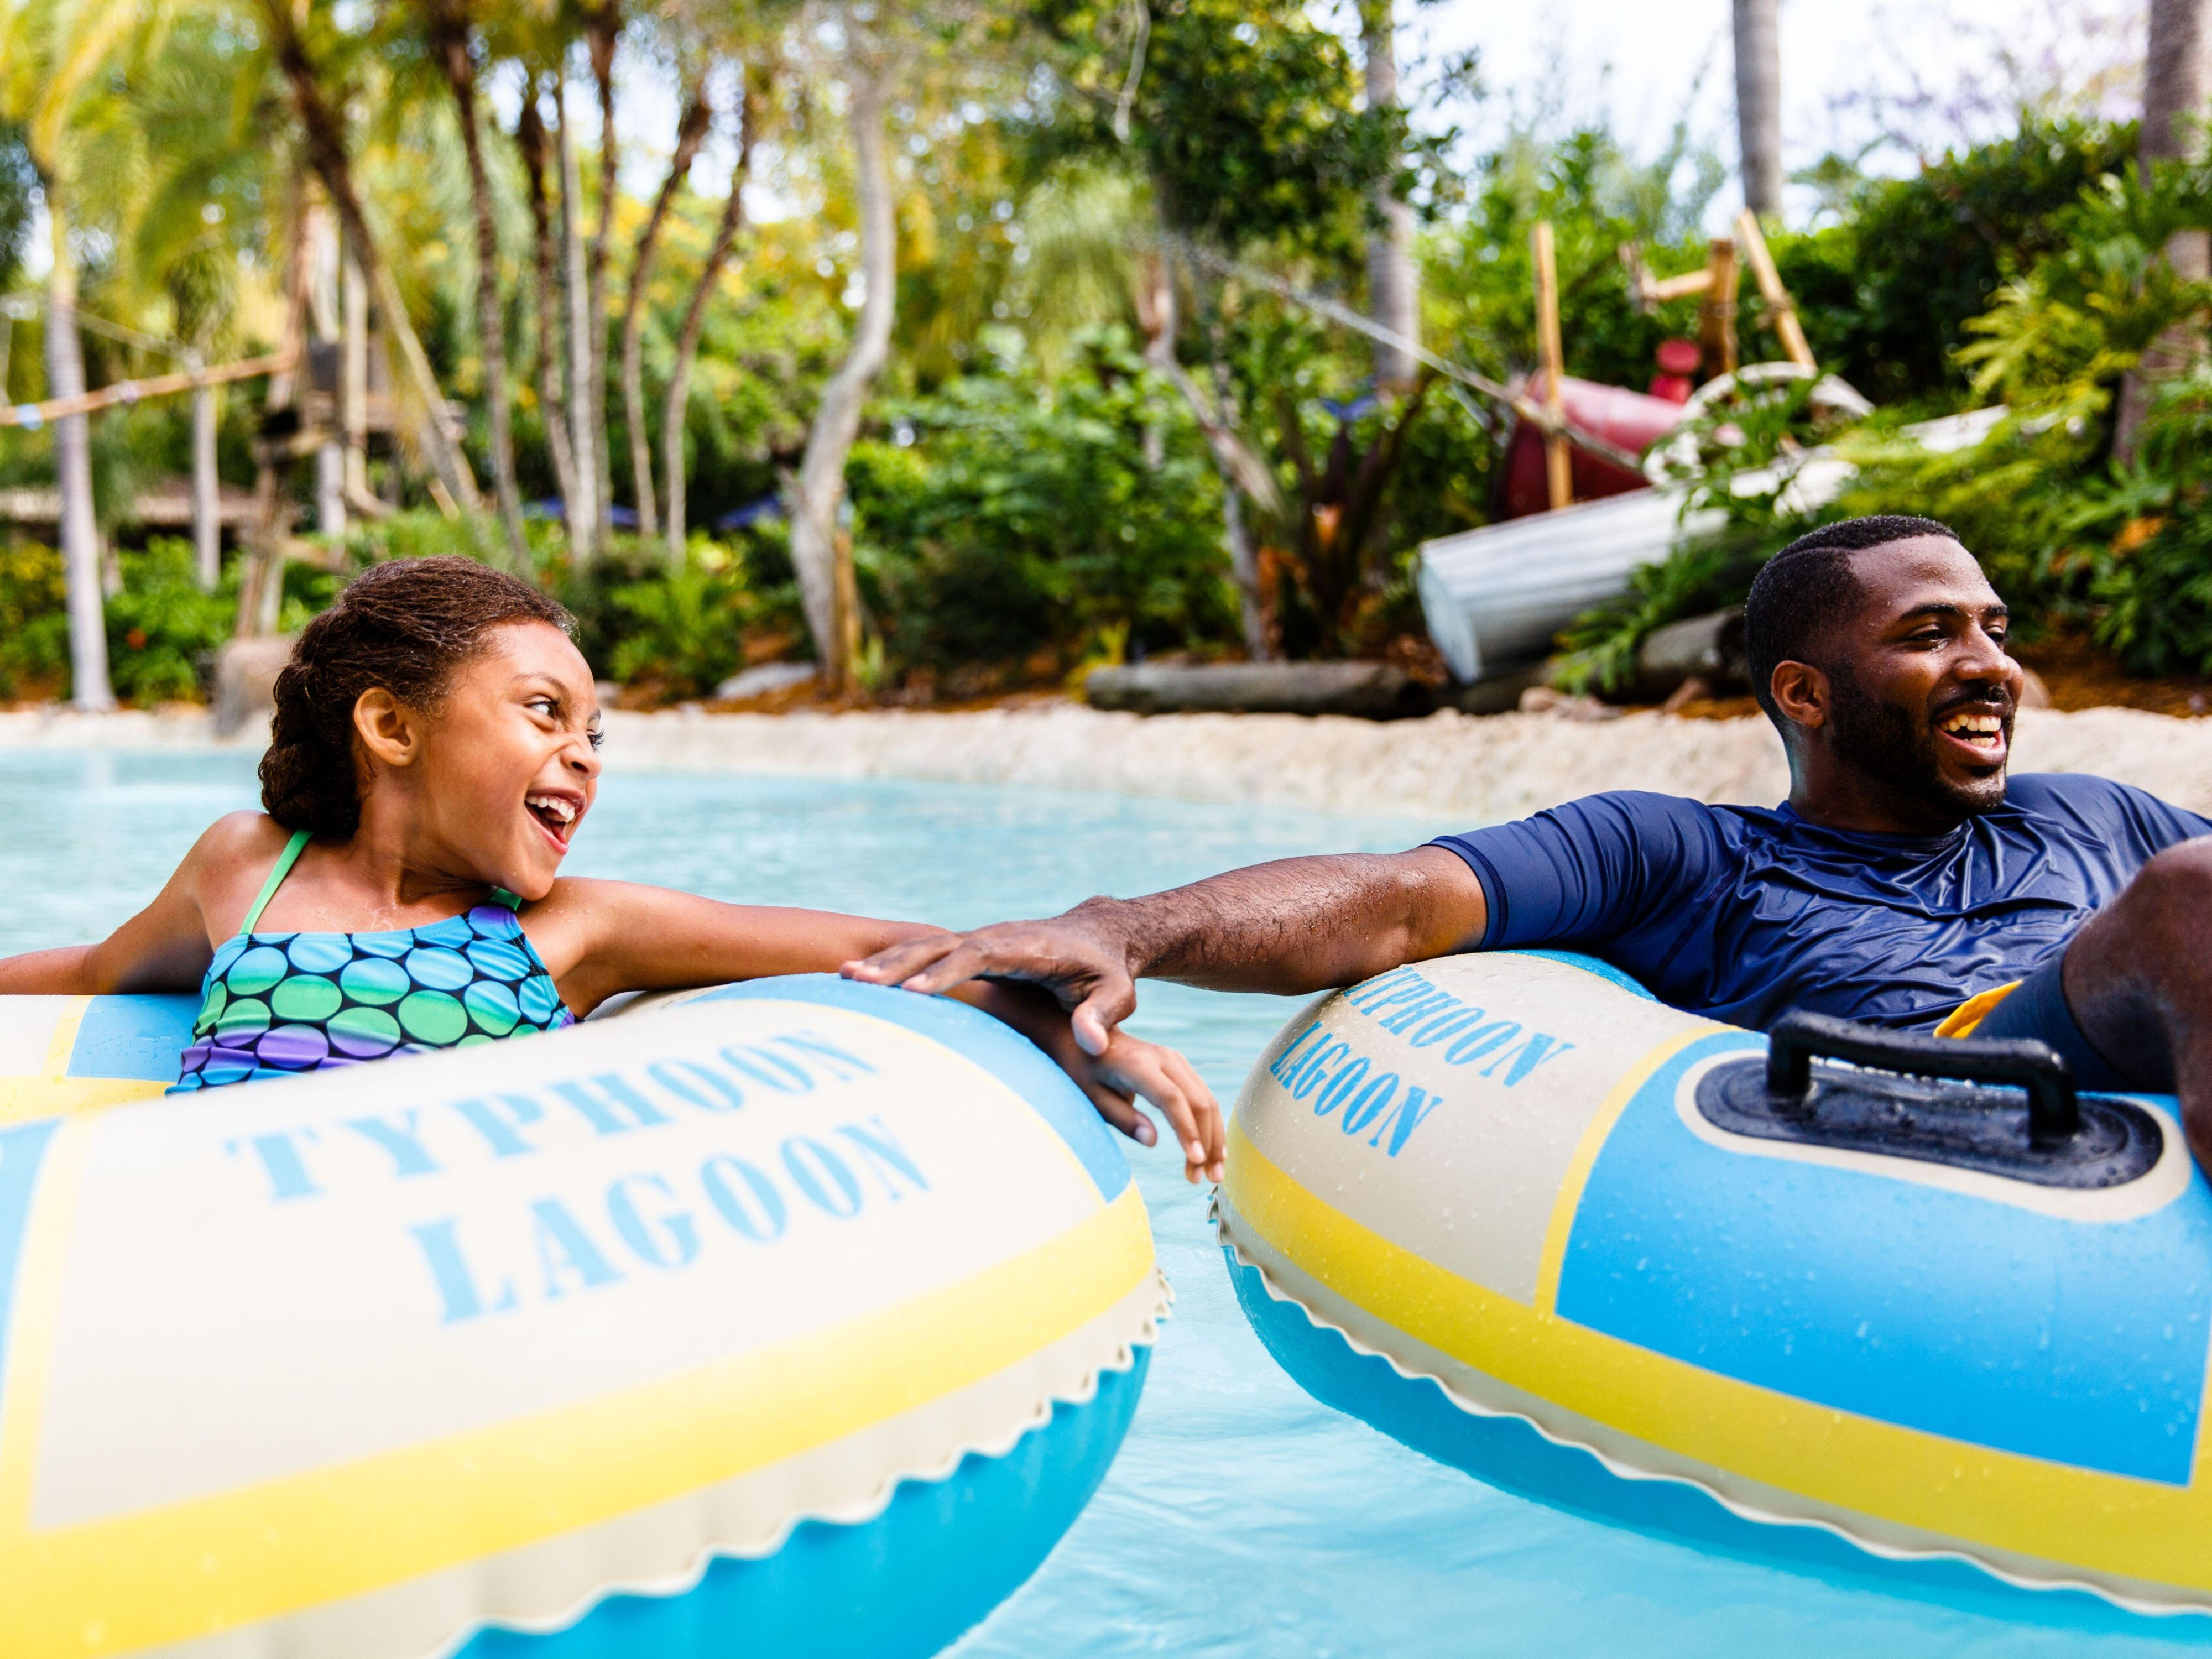 Area Attractions Disney Typhoon Lagoon, just 5 miles away